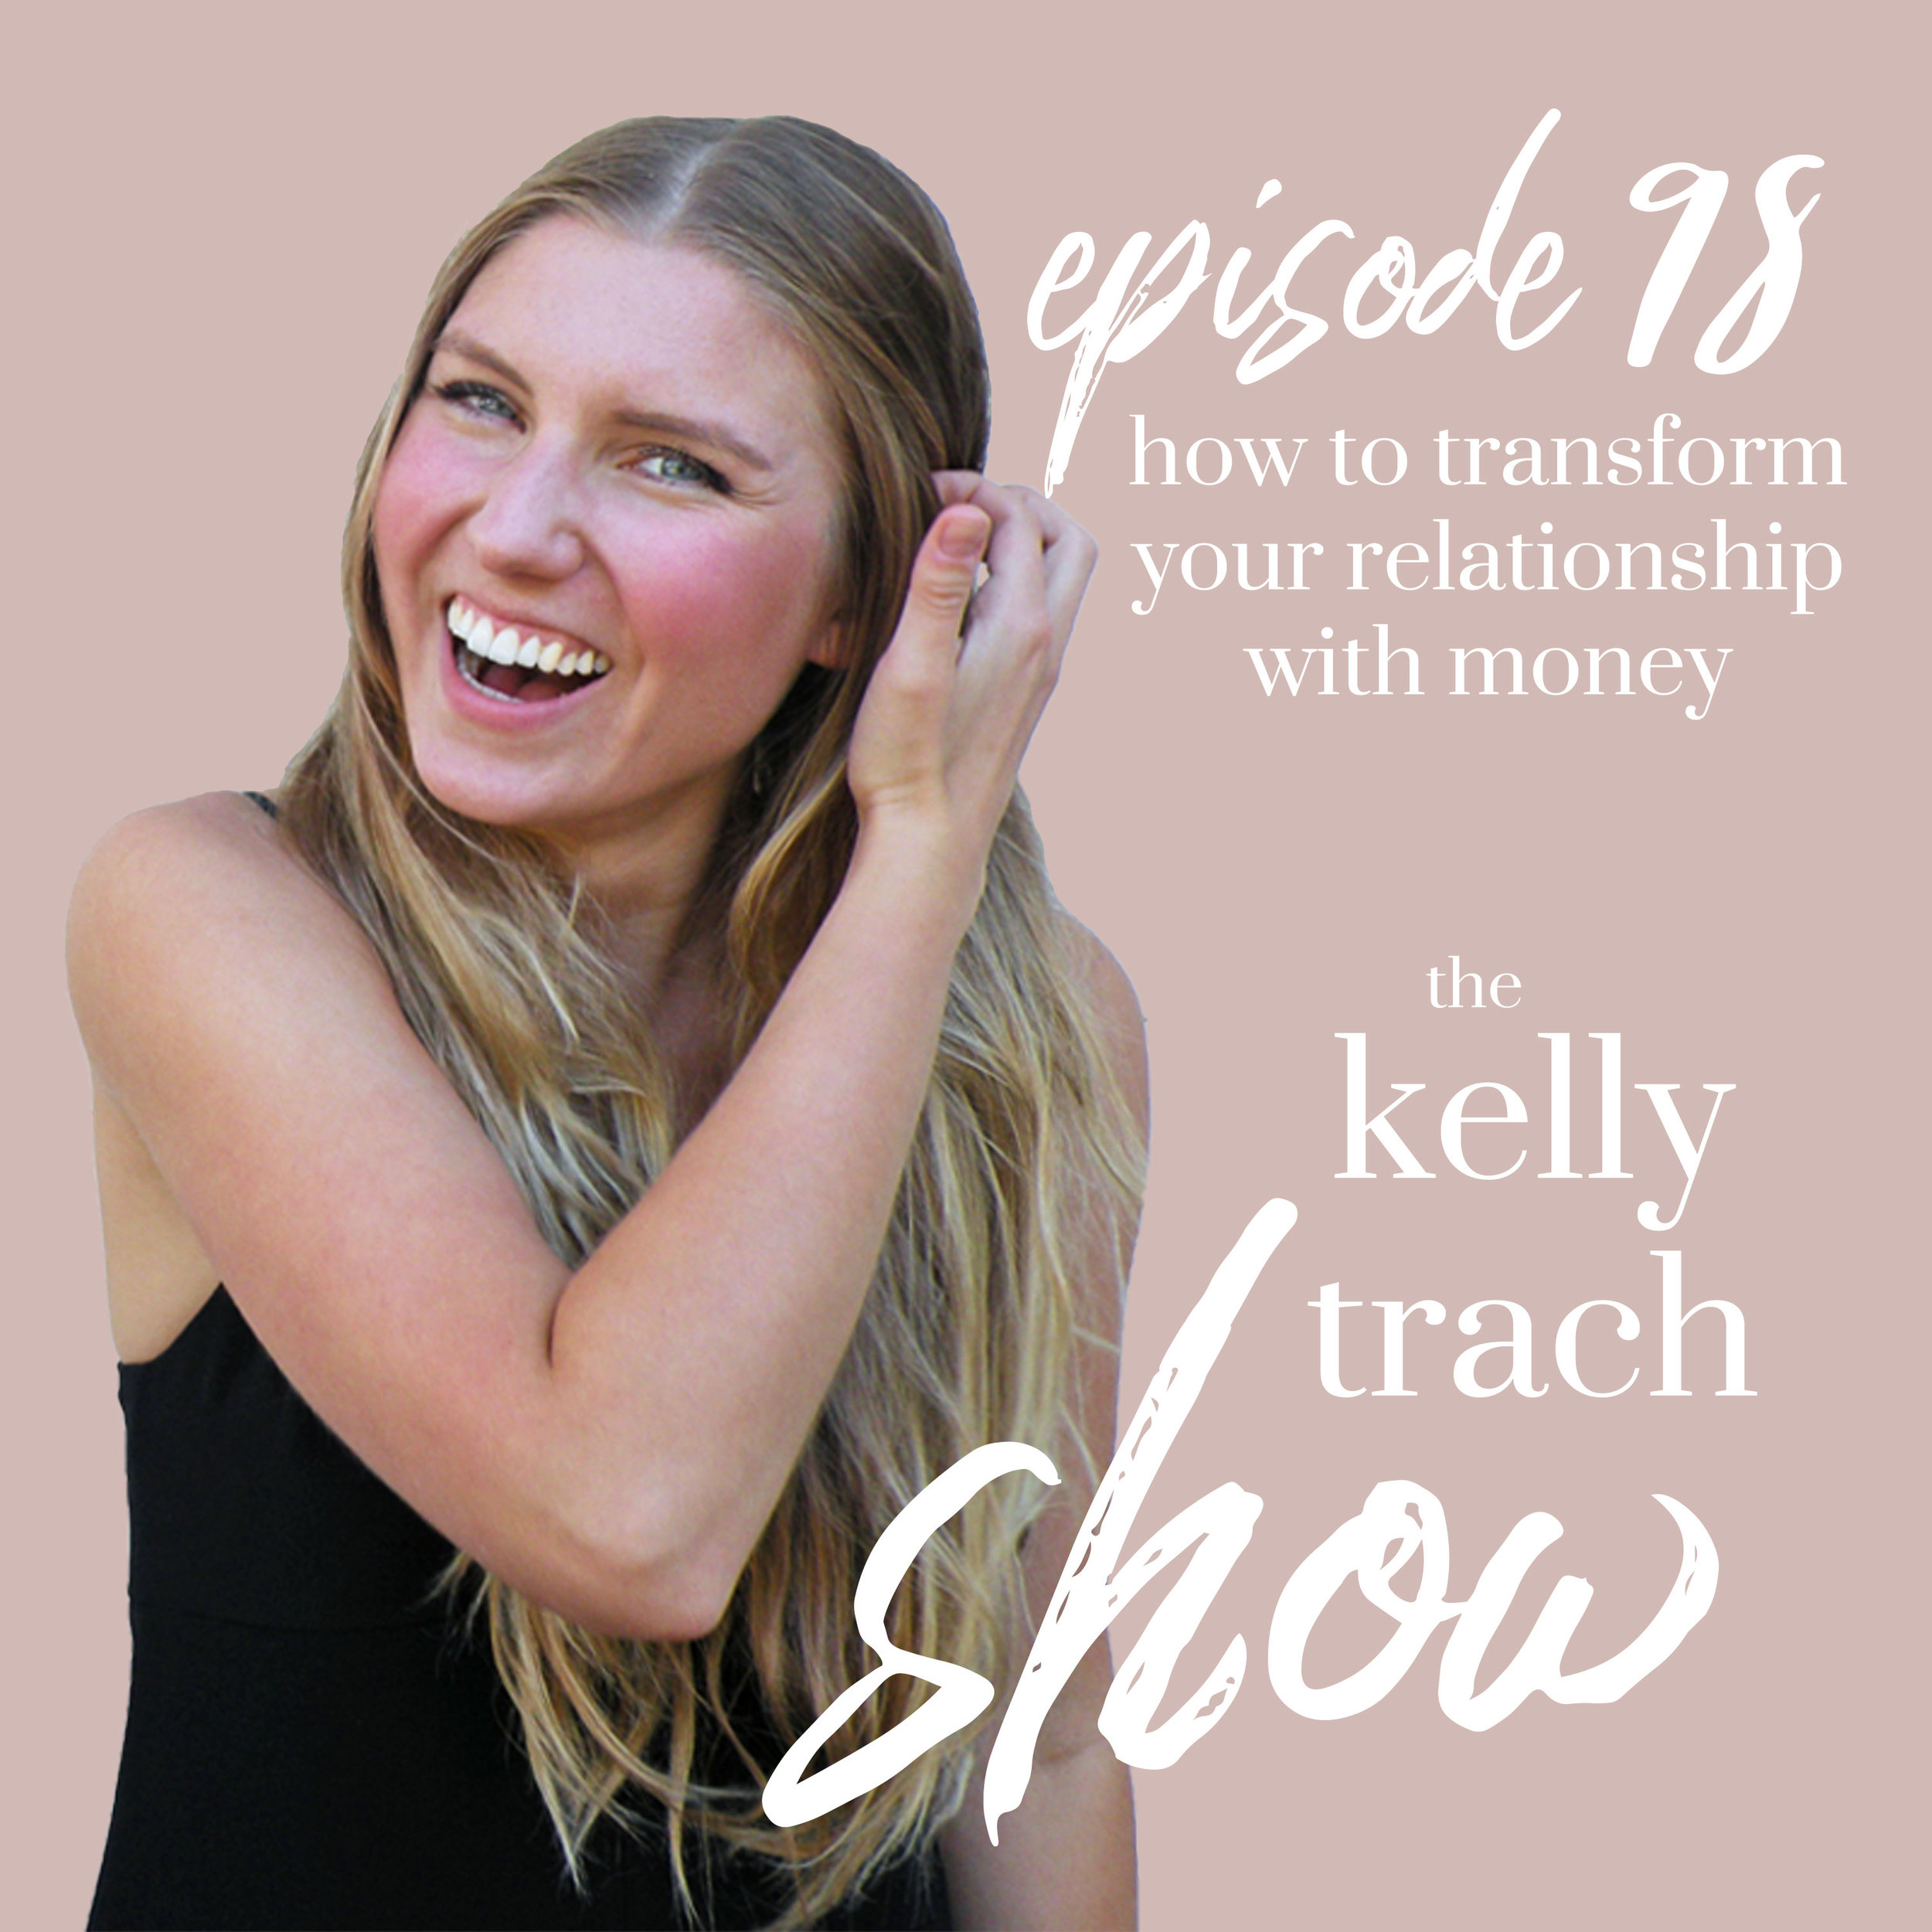 98 How To Transform Your Relationship With Money The Kelly Trach Show Podcast.jpg